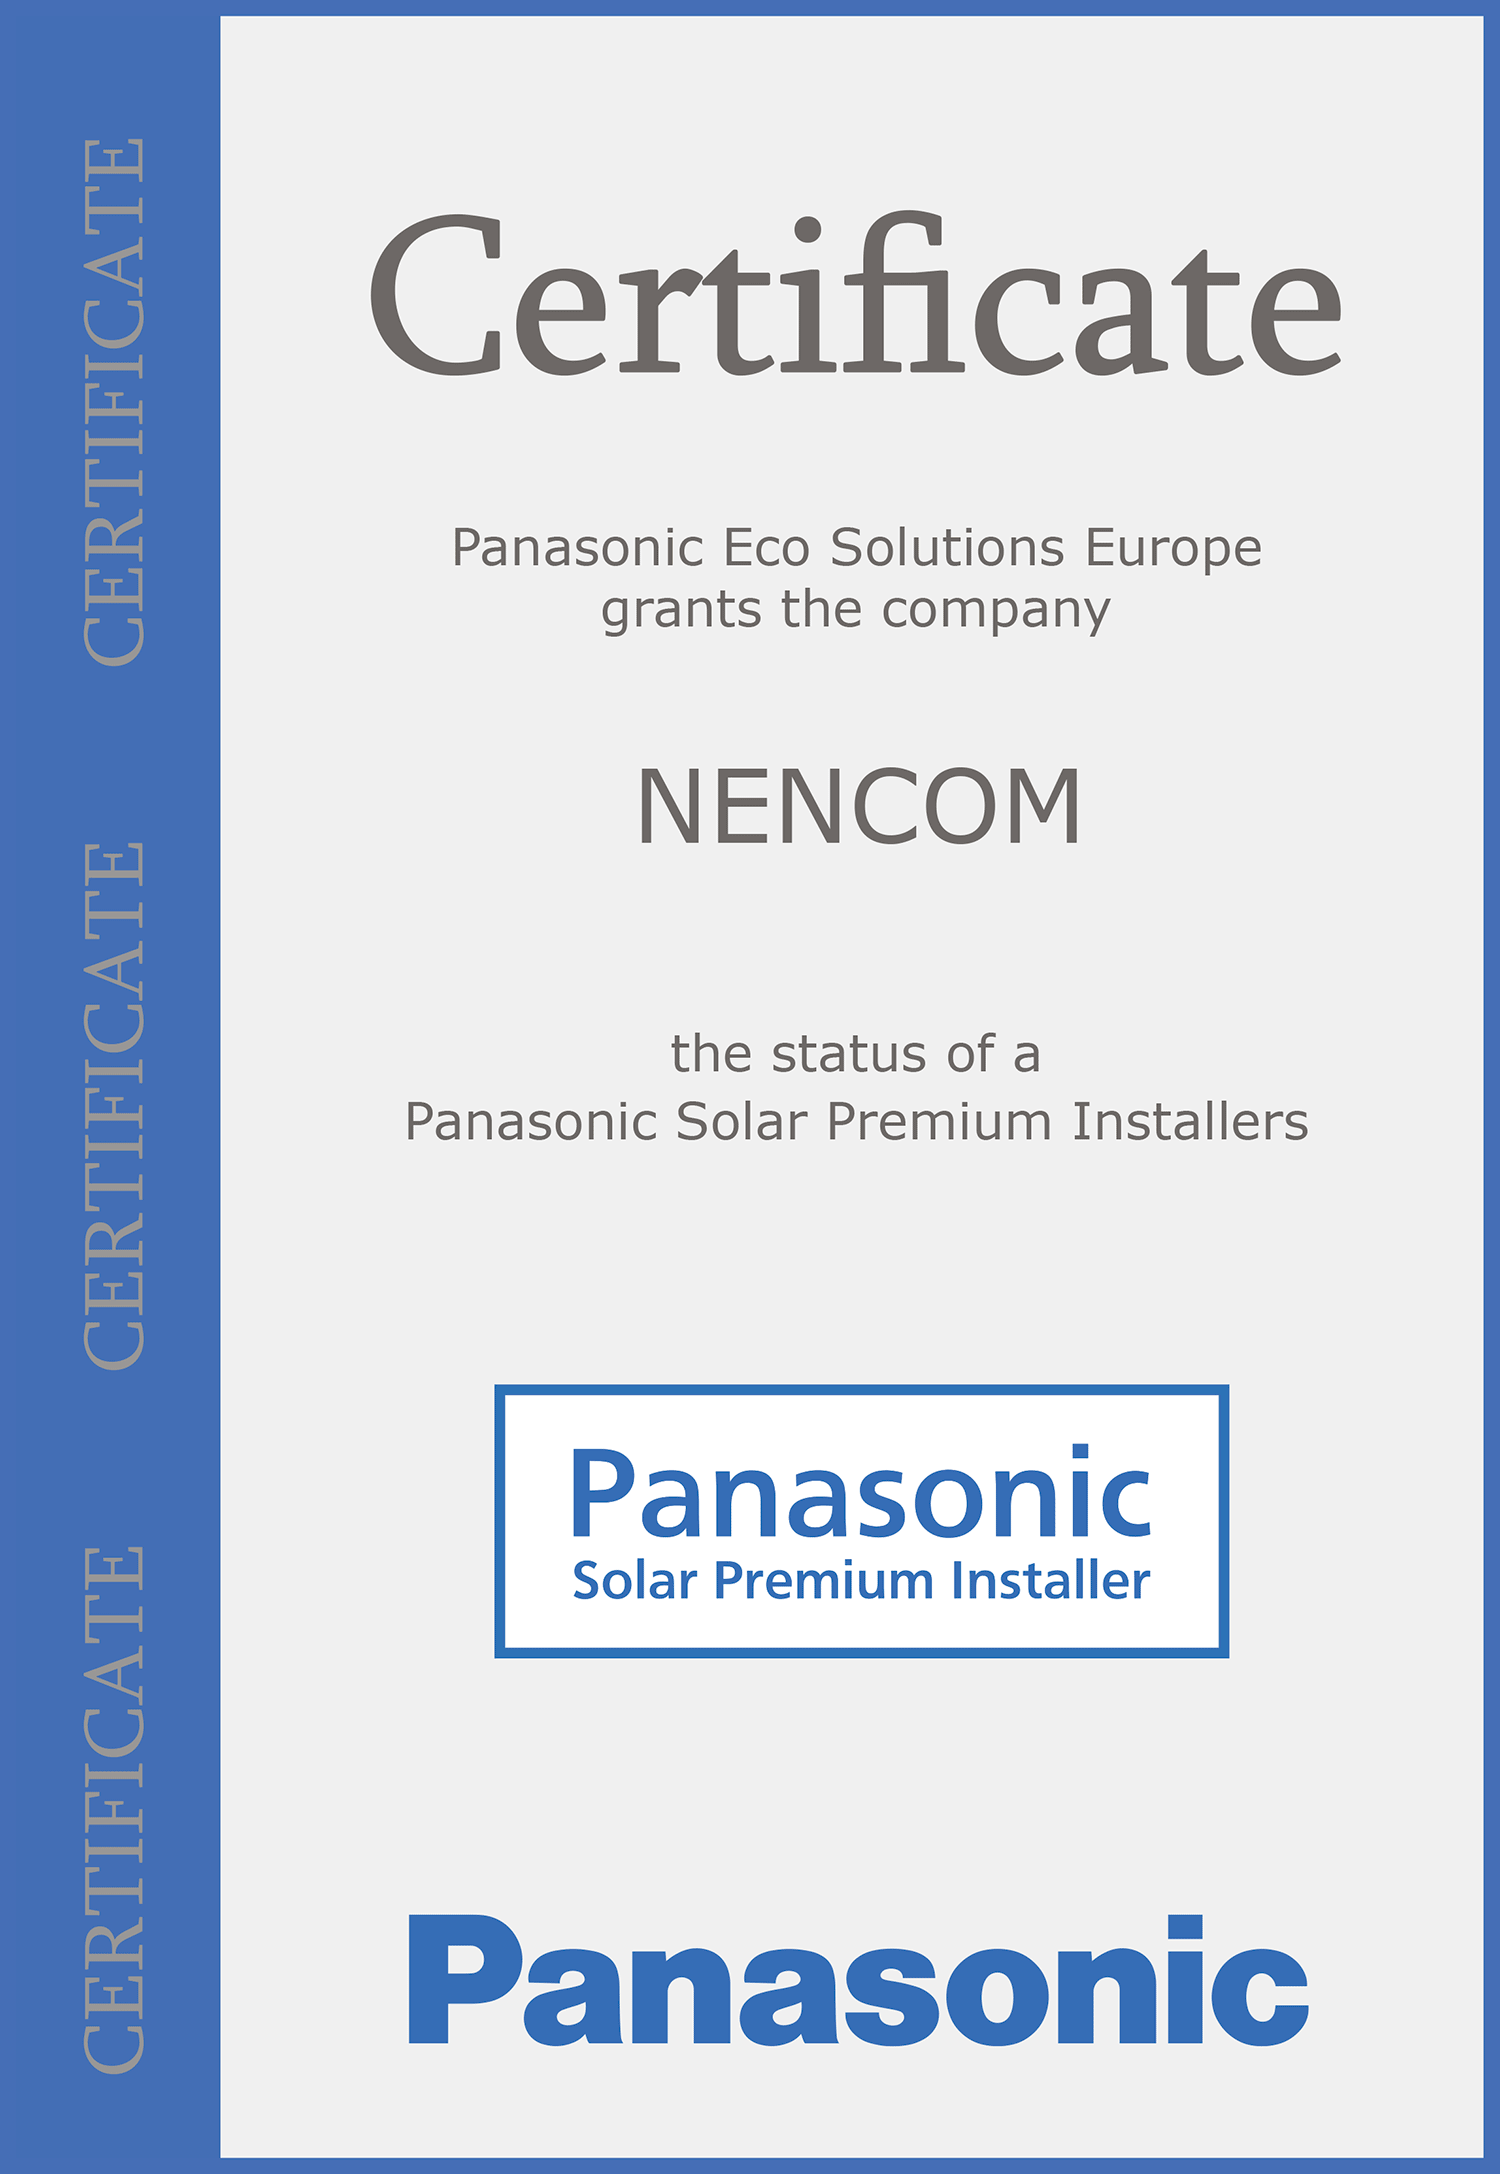 NENCOM is a Panasonic Solar Premium Installer status